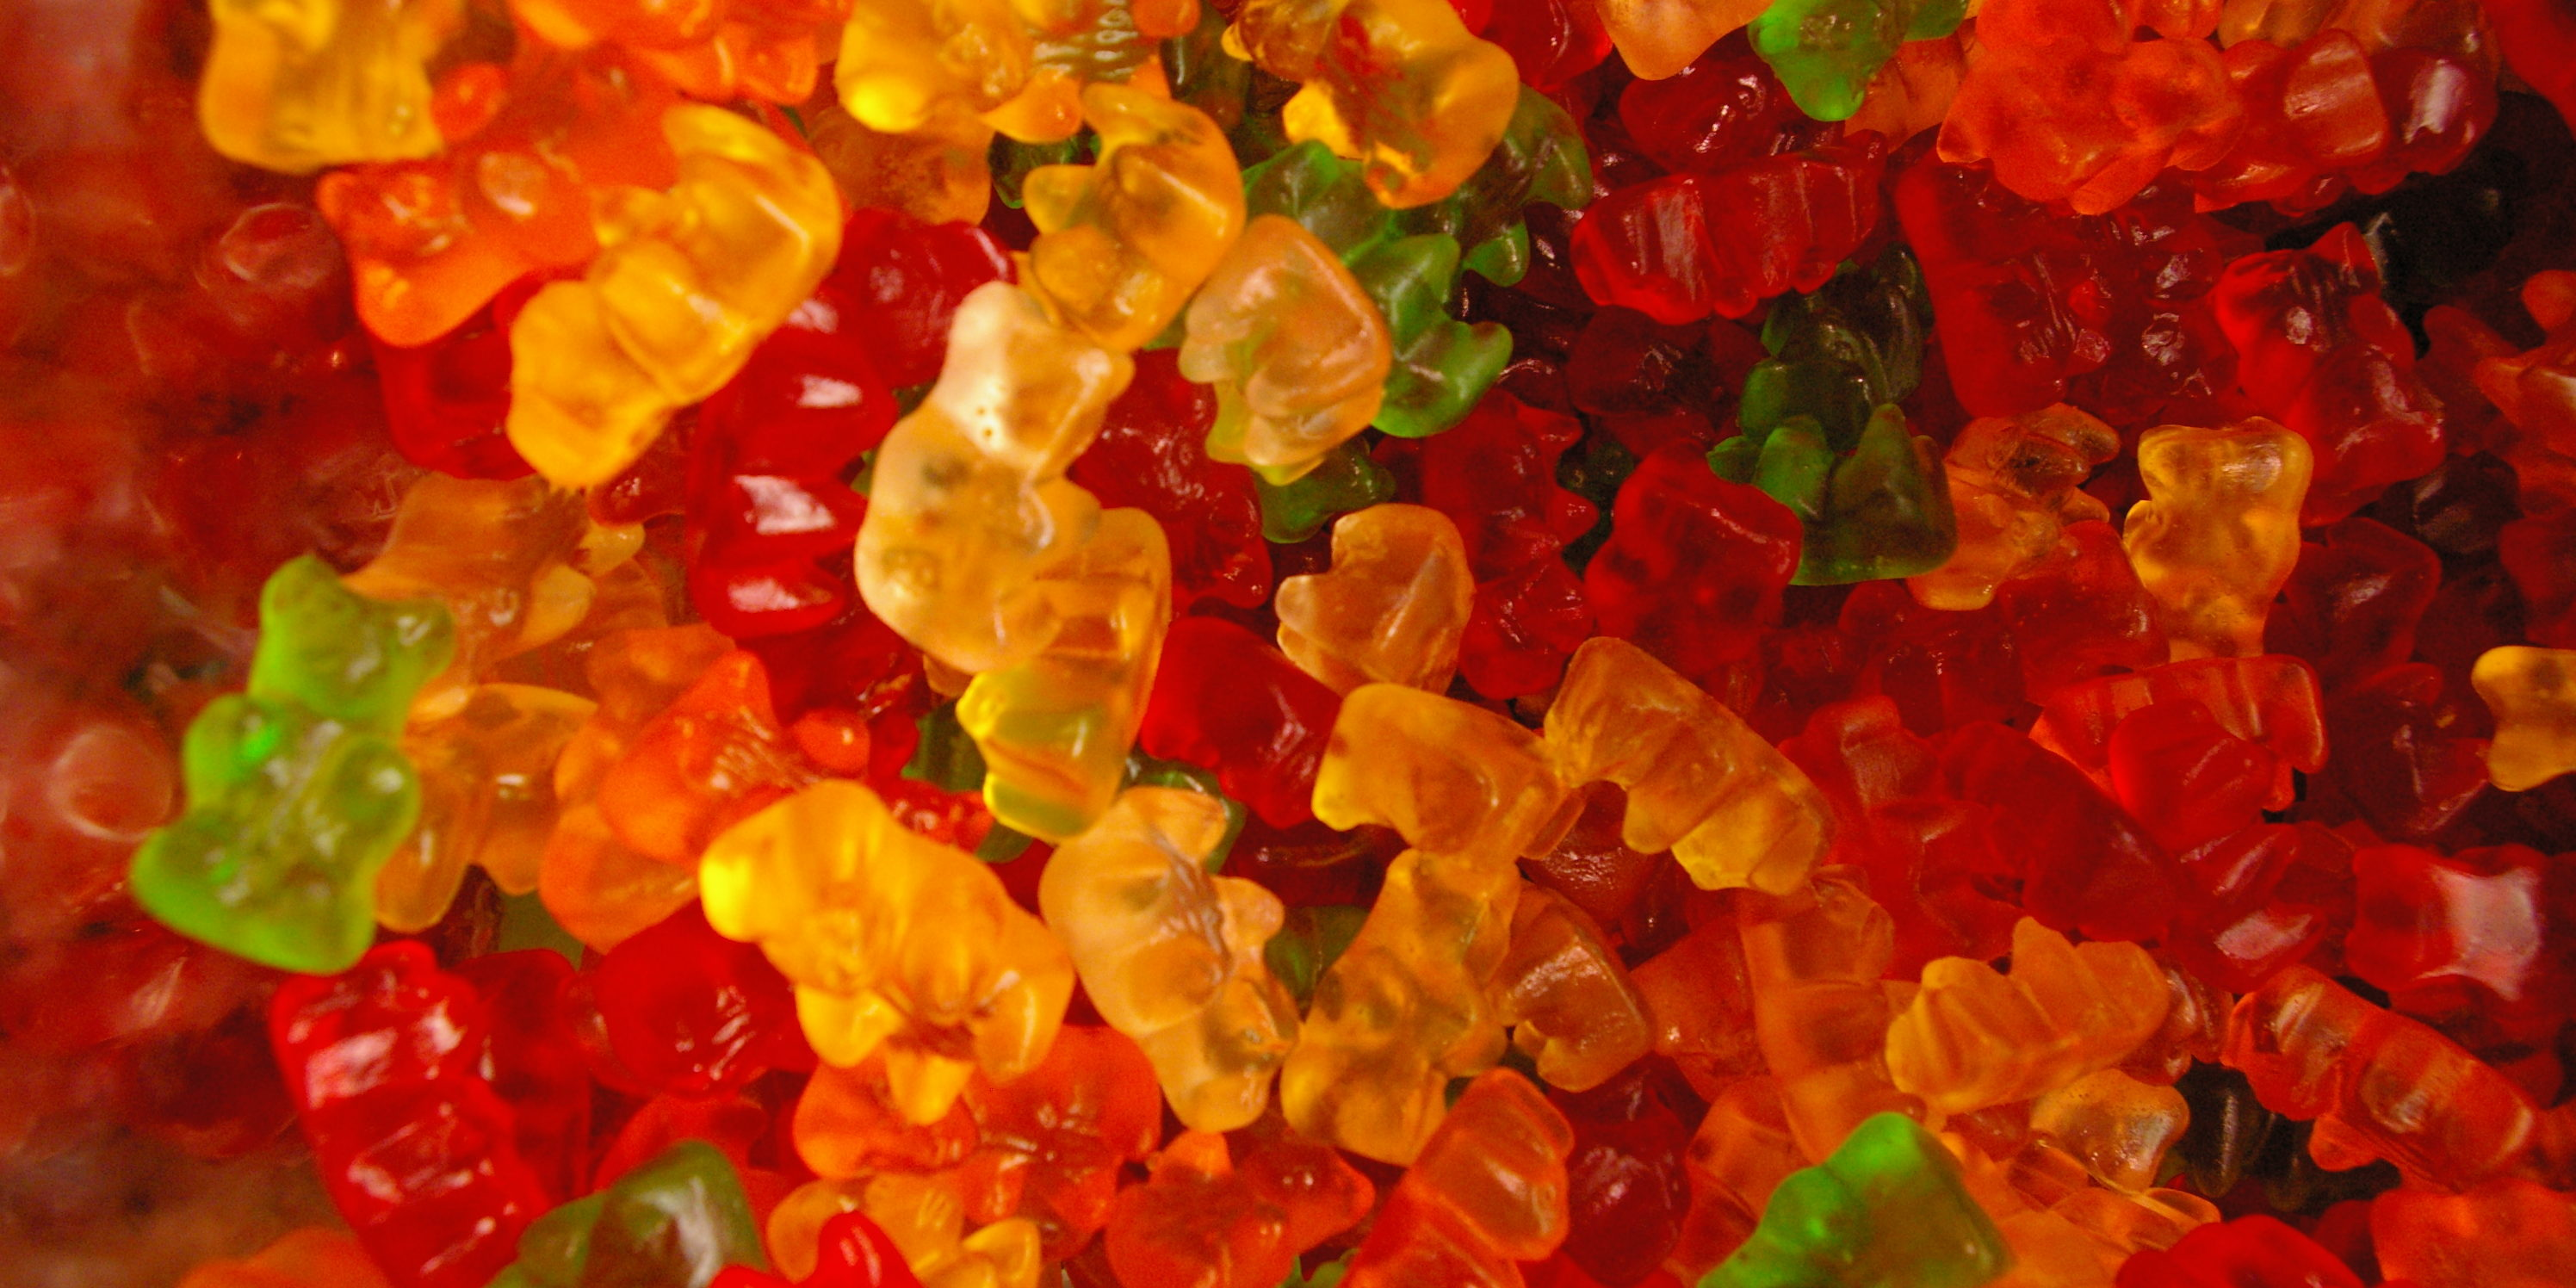 How to make your own delicious weed gummies | Recreational Pot Shops